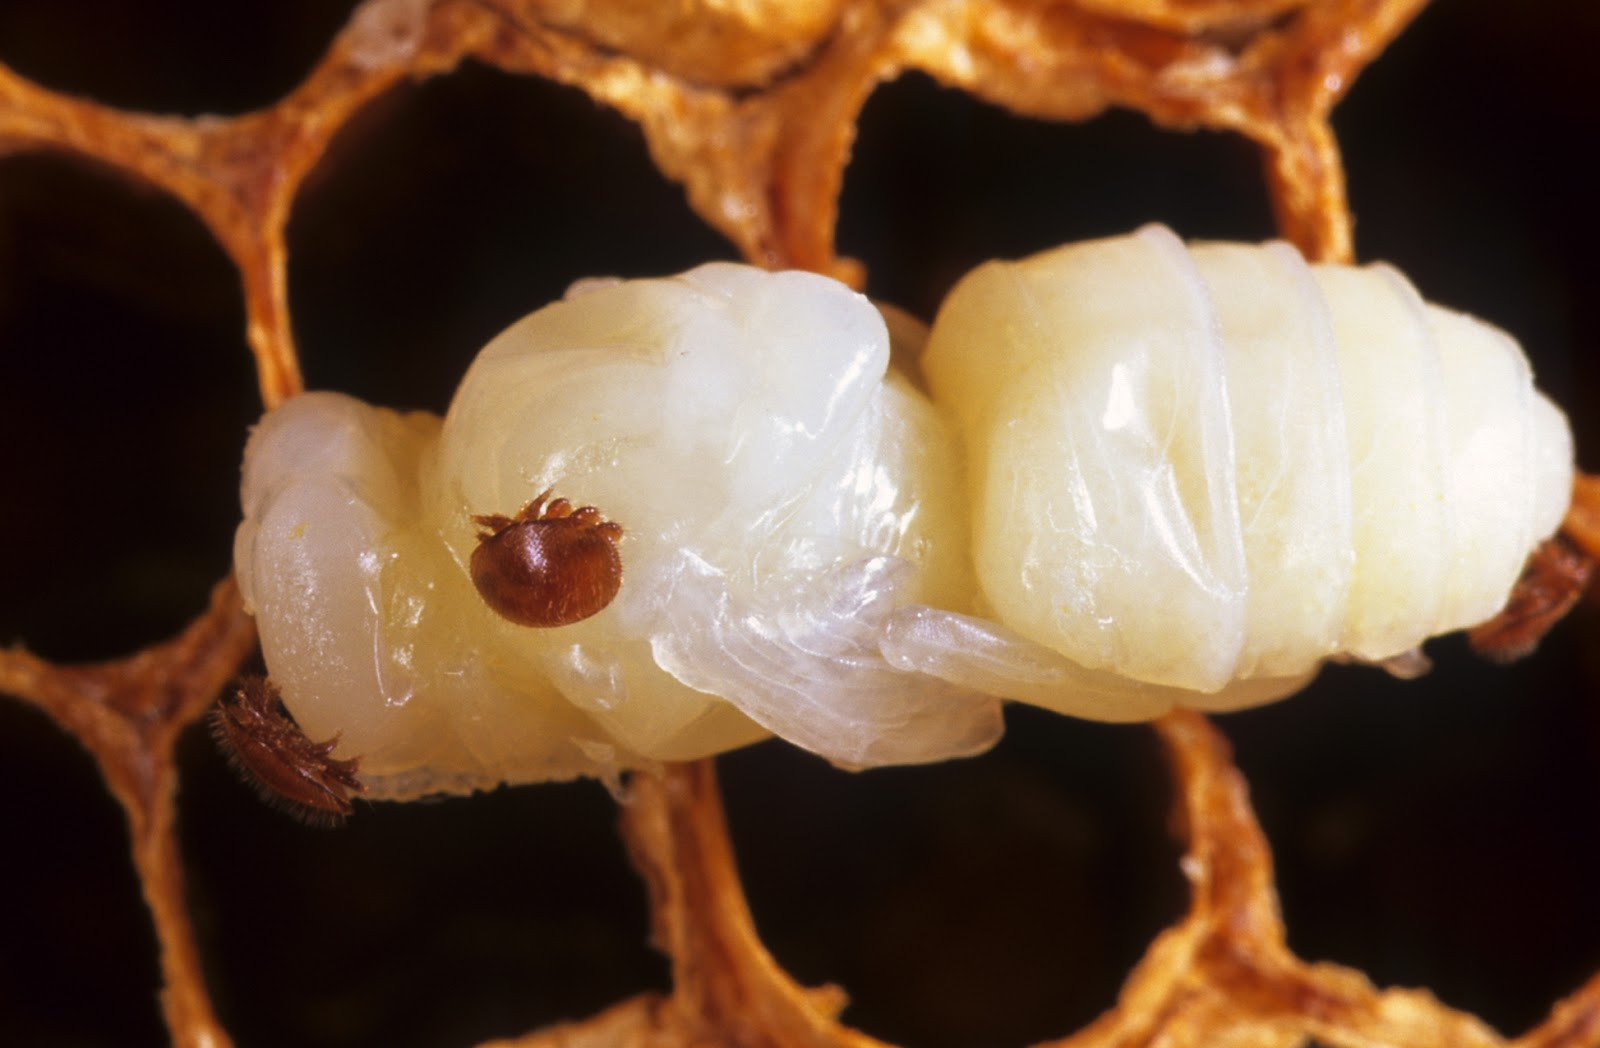 Brushy Mountain Bee Farm: Controlling Your Varroa Mite Counts